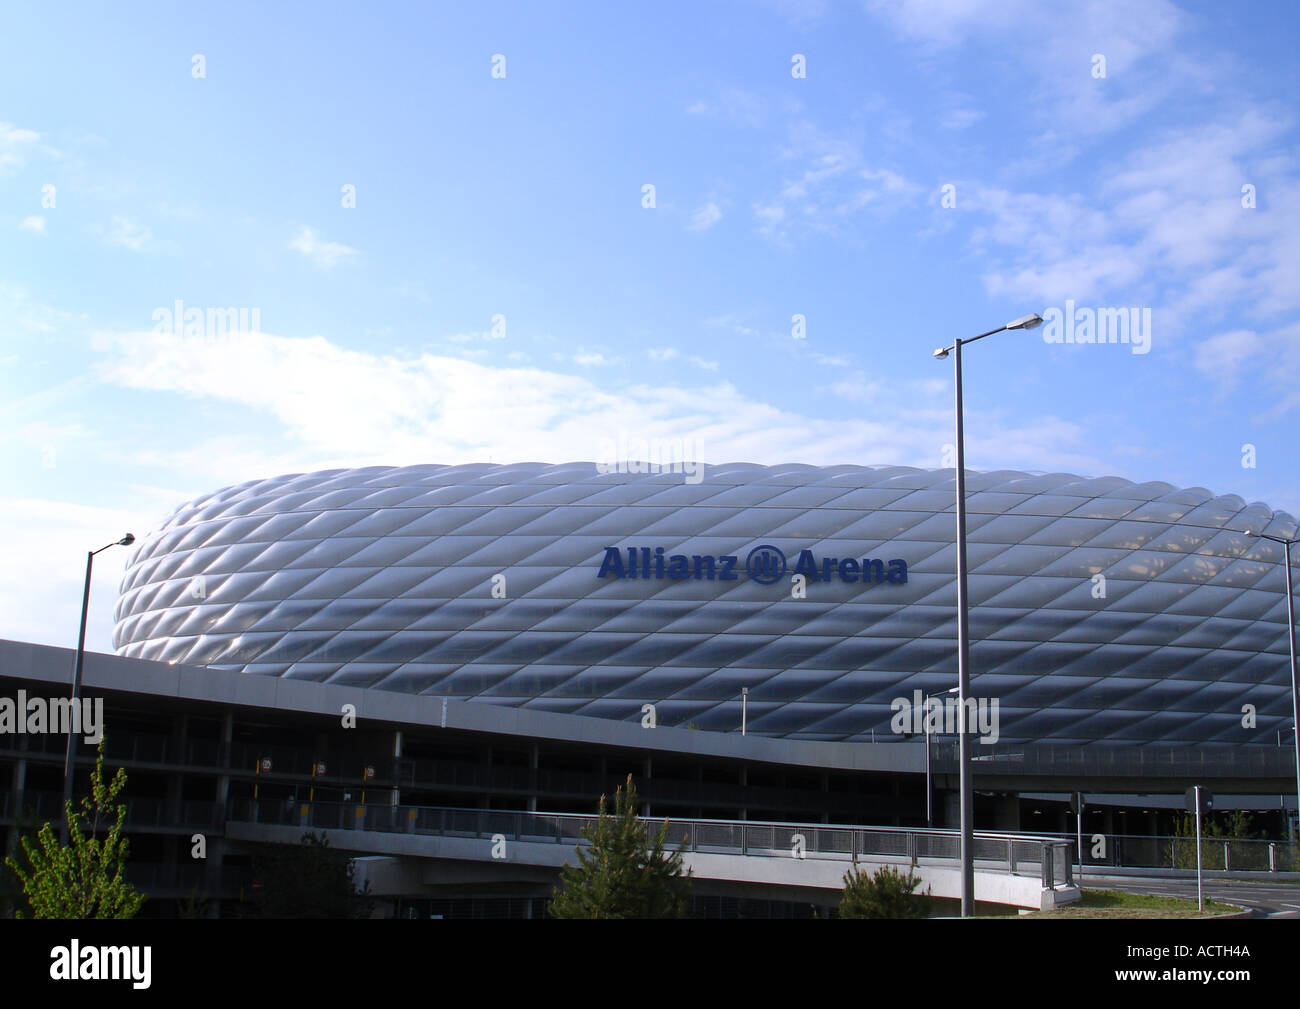 Allianz Arena stadion germany - Stock Image